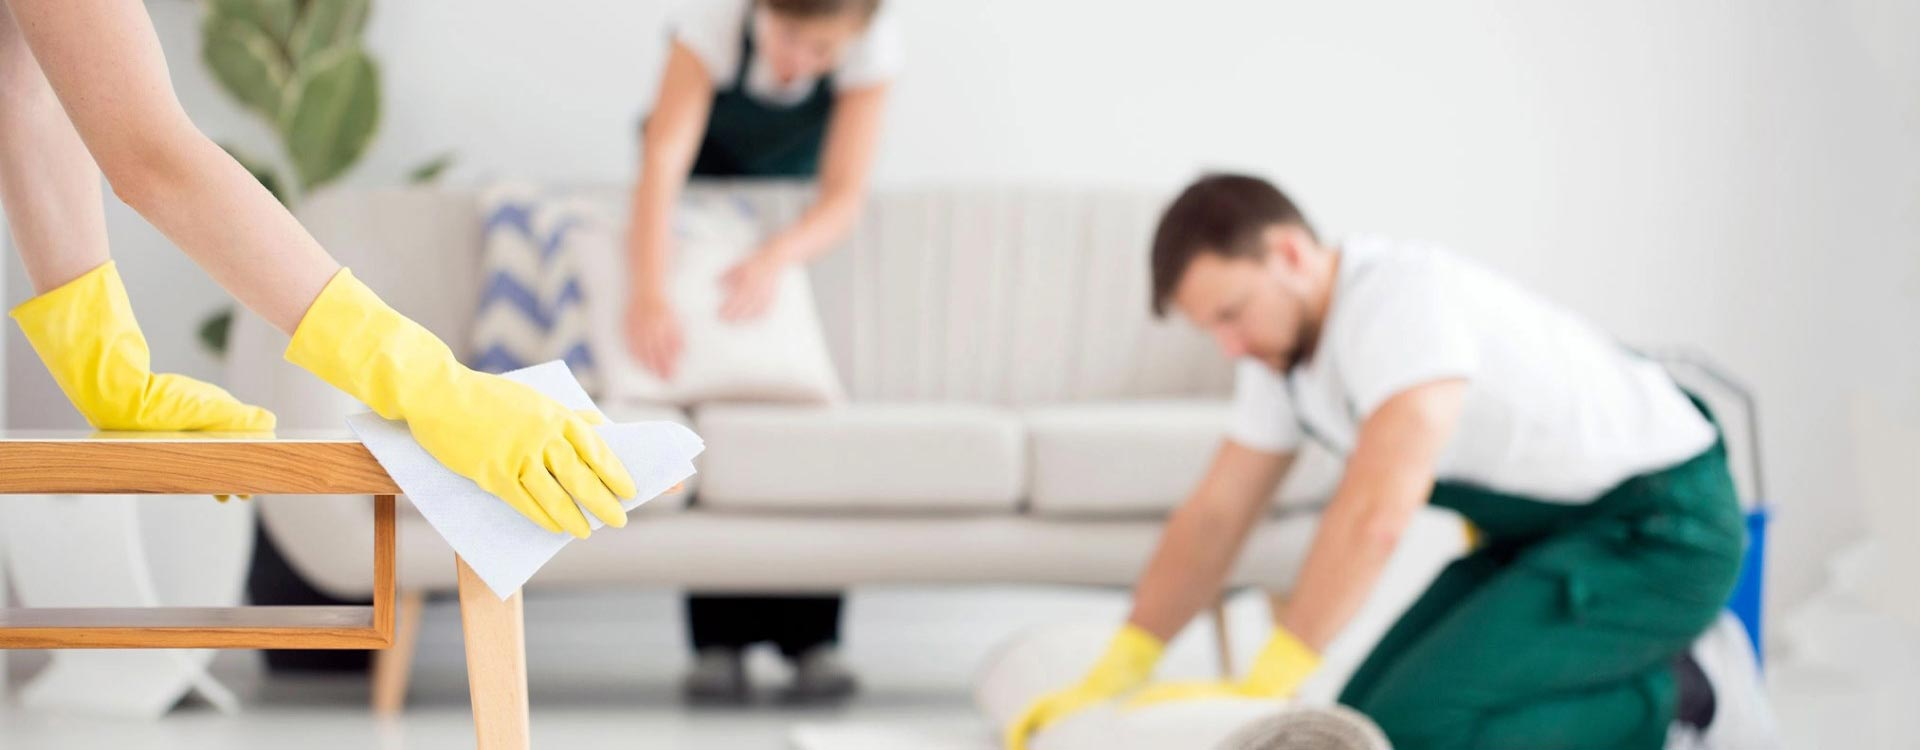 Best Local Cleaners in Washington Dc